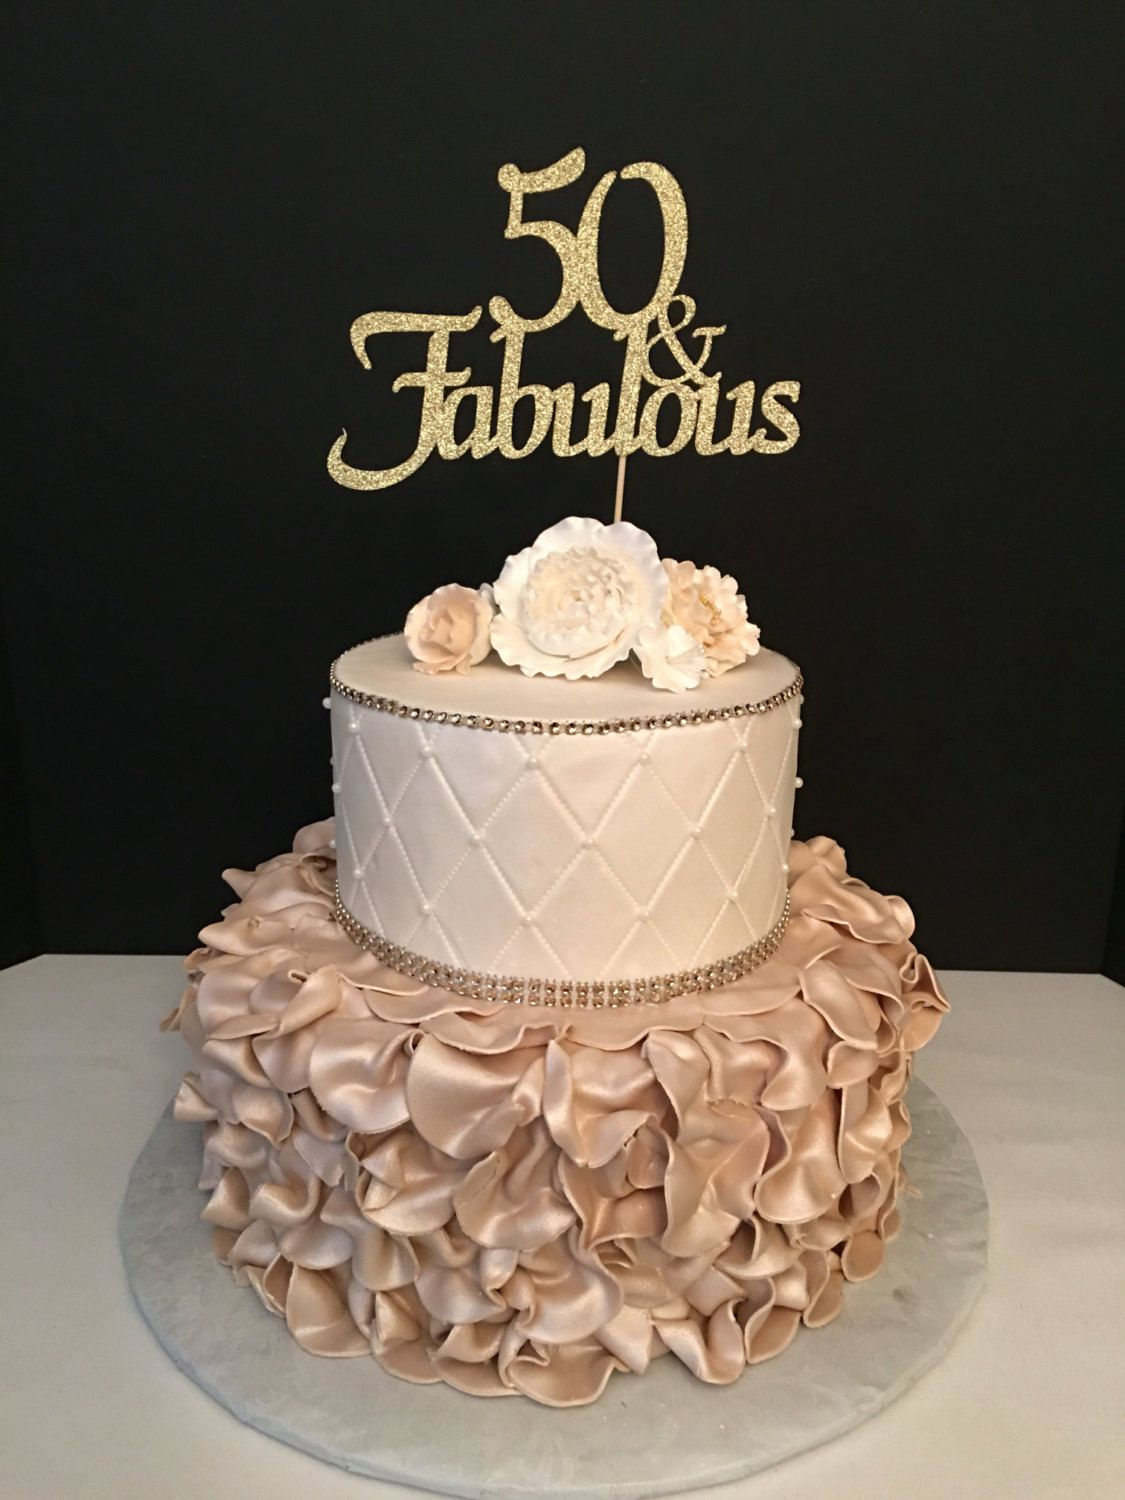 50 Birthday Cake Ideas Any Number Gold Glitter 50th Topper And Fabulous